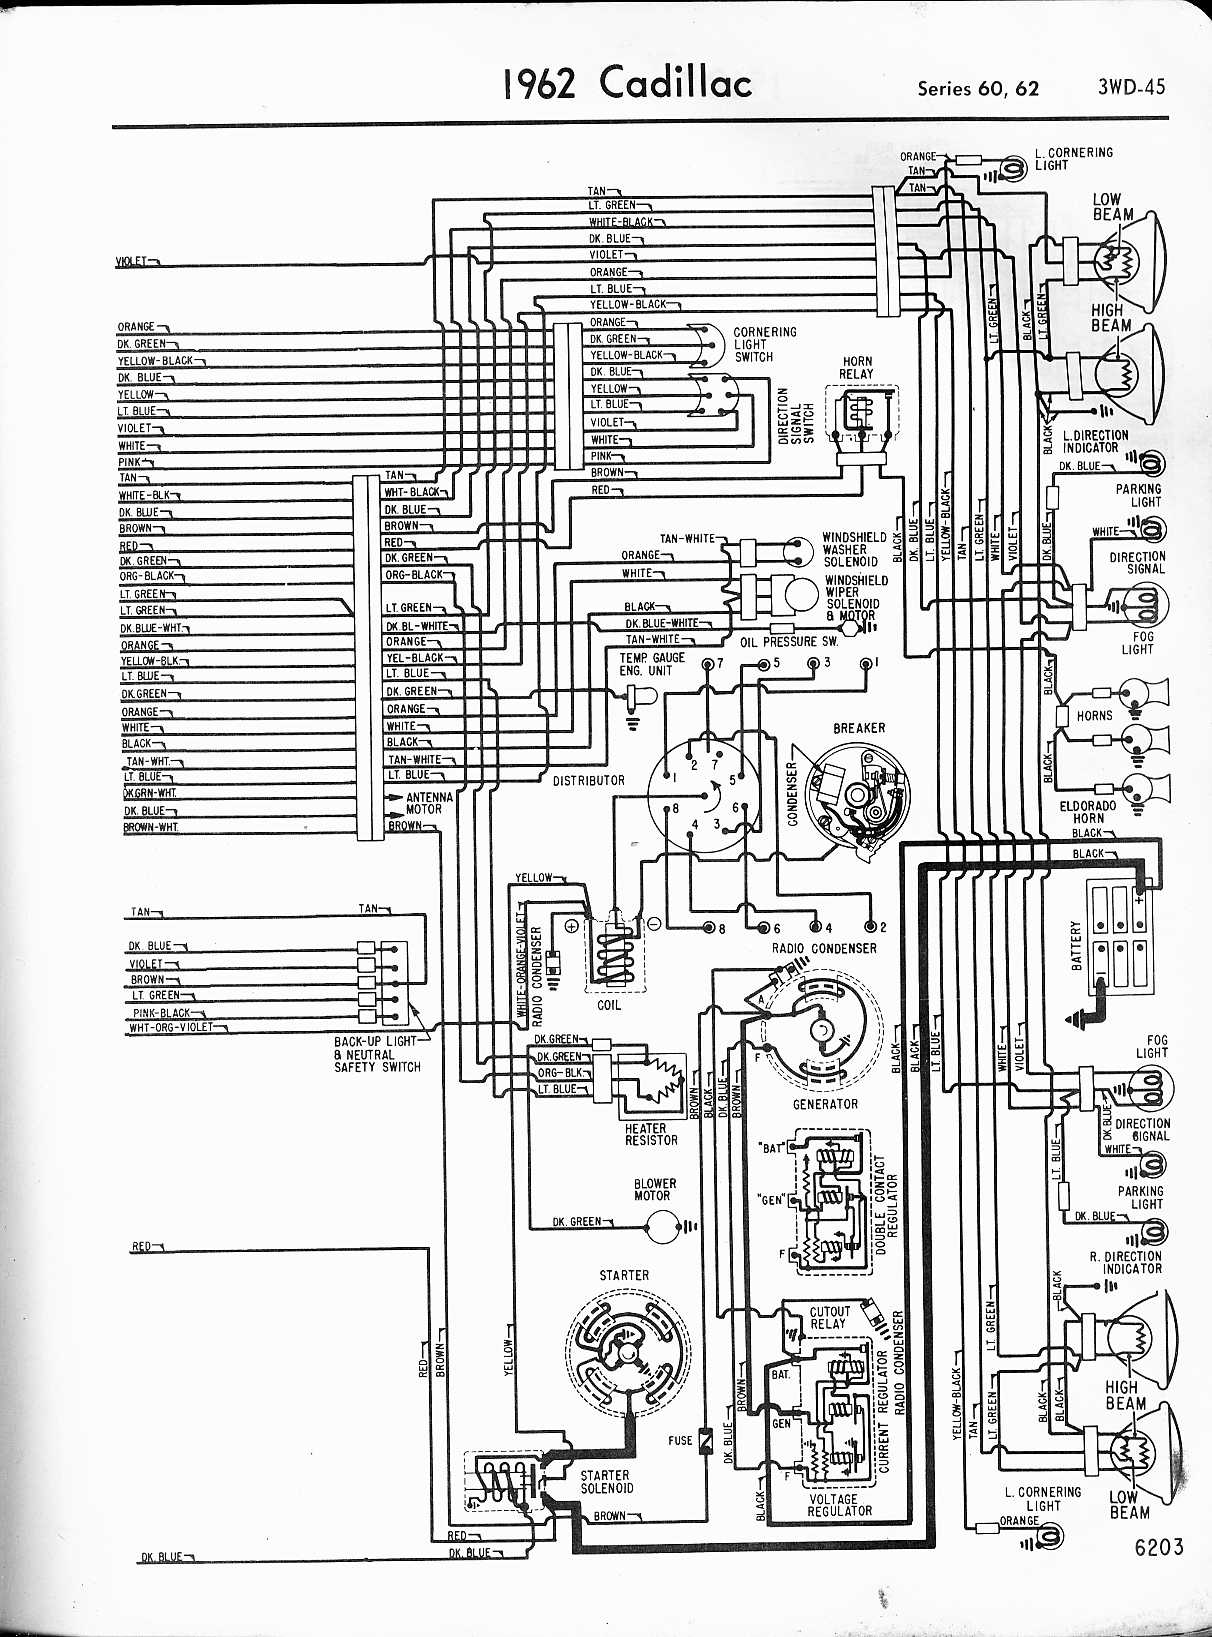 66 Cadillac Wiring Diagram Schematic Just Another Library Rh 6 Akszer Eu 1948 Schematics 1968